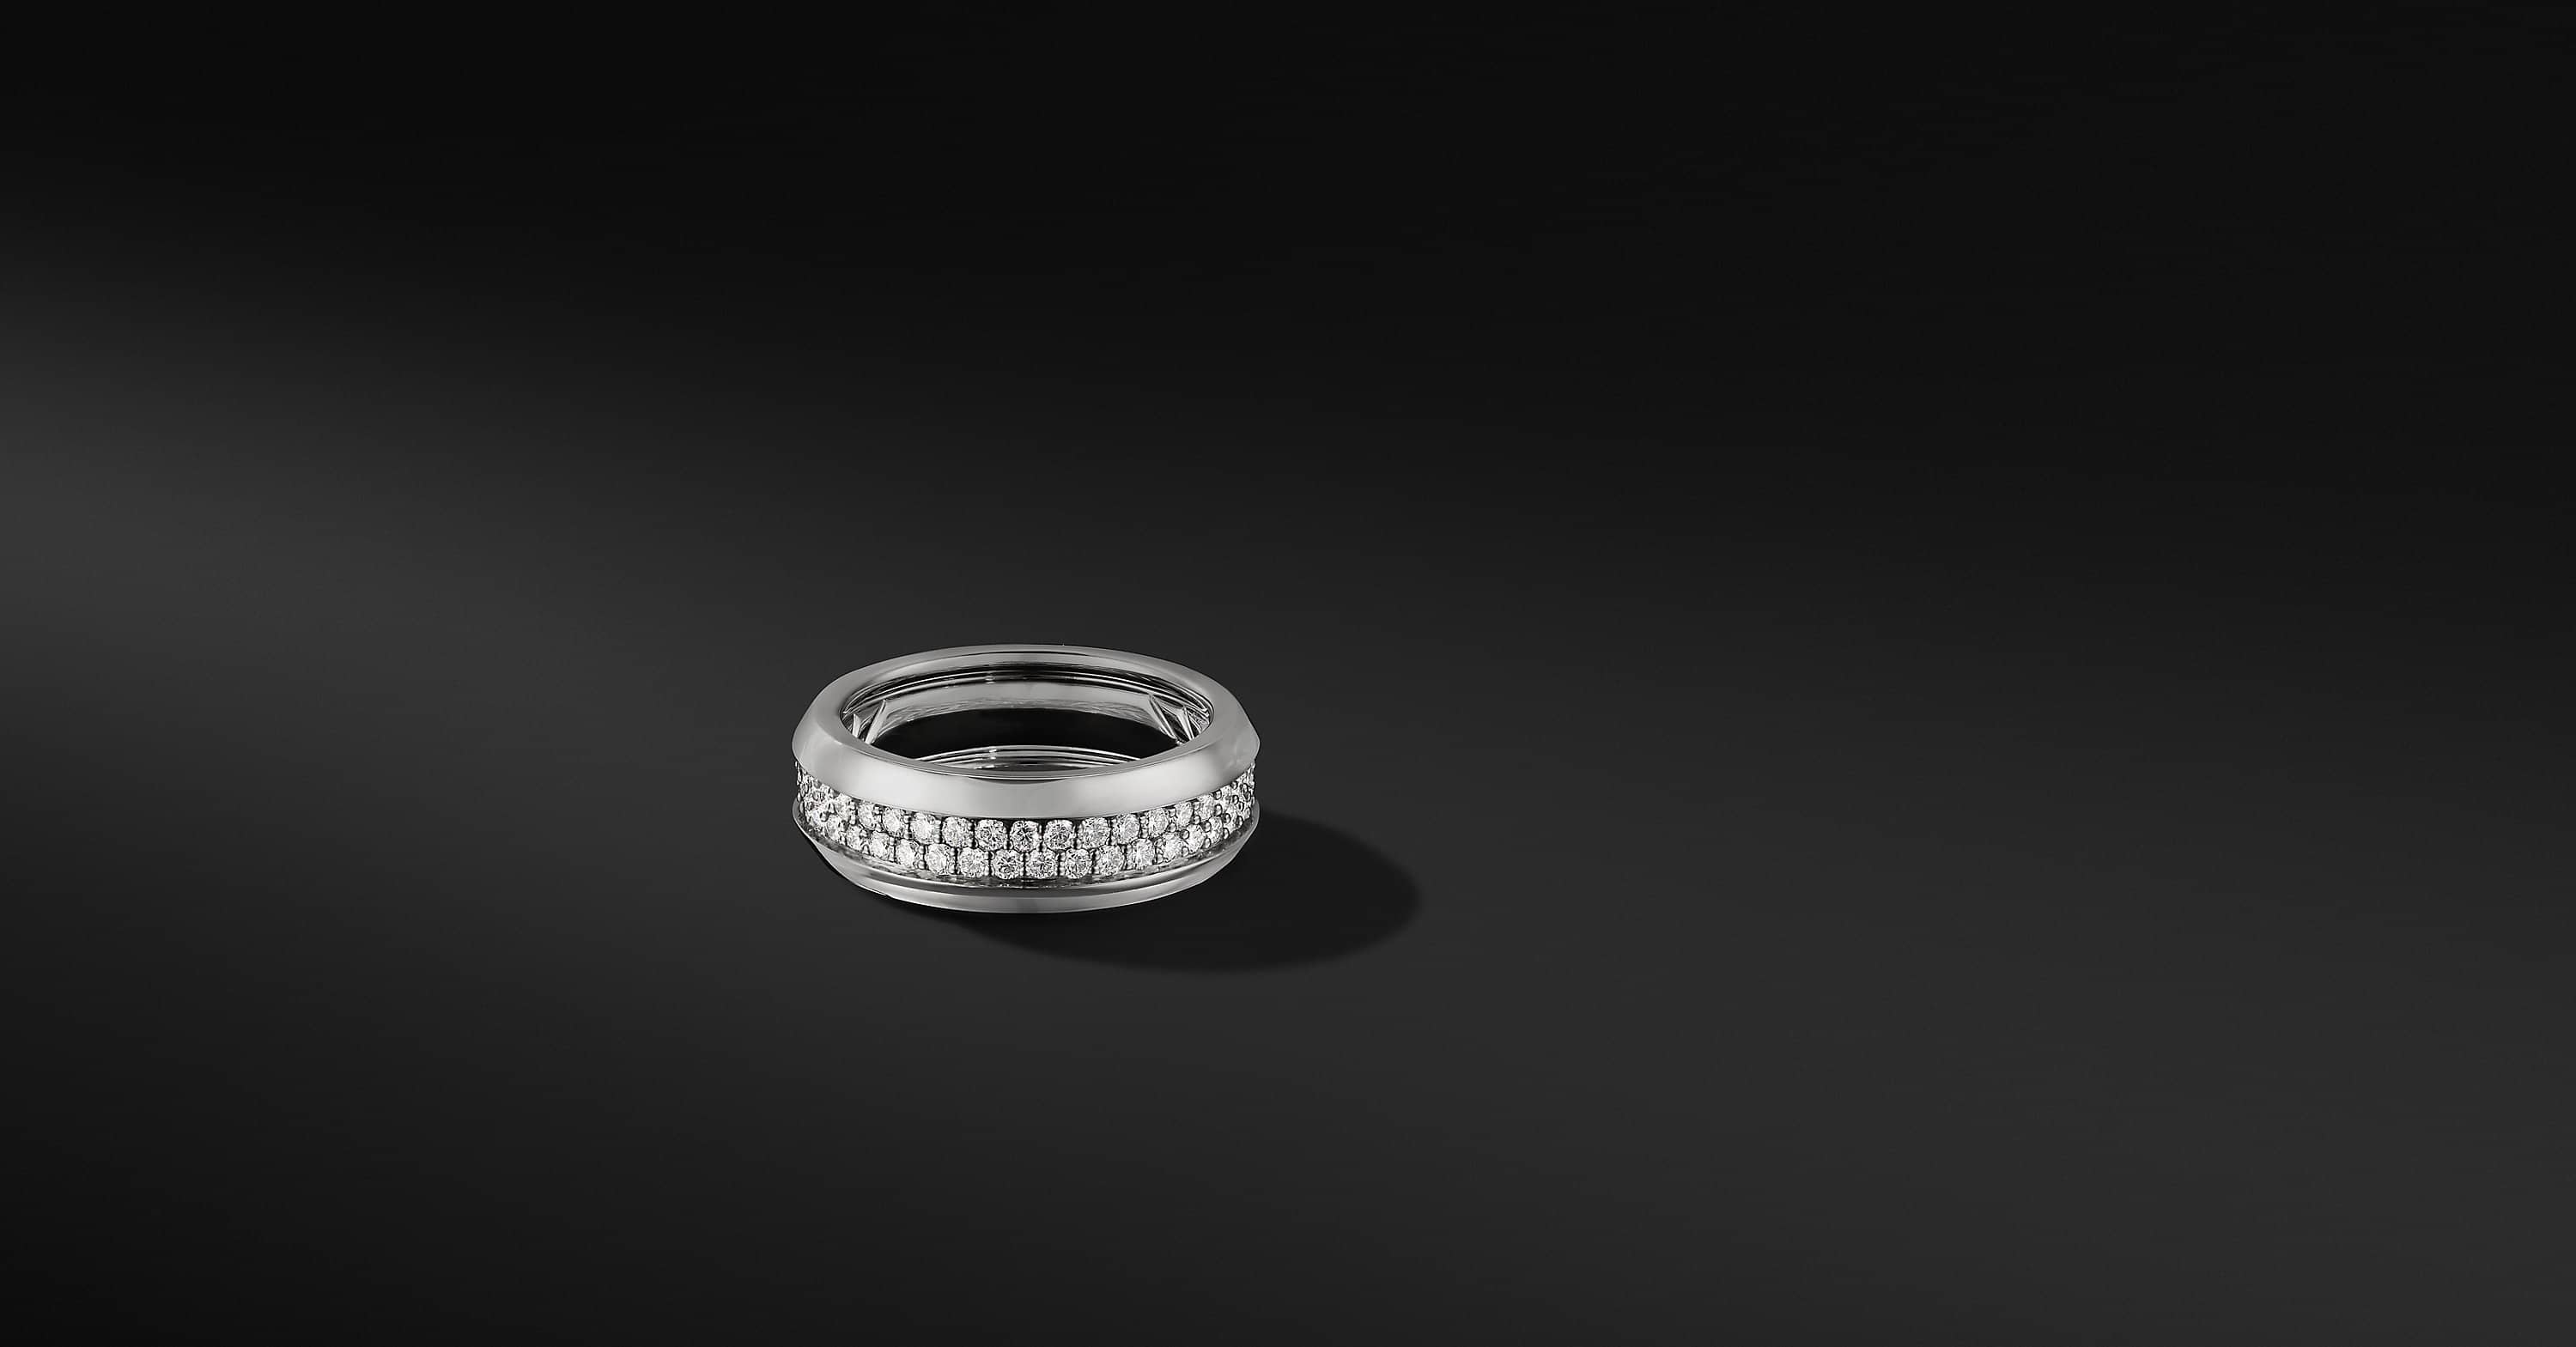 Beveled Two Row Band Ring in 18K White Gold, 8mm